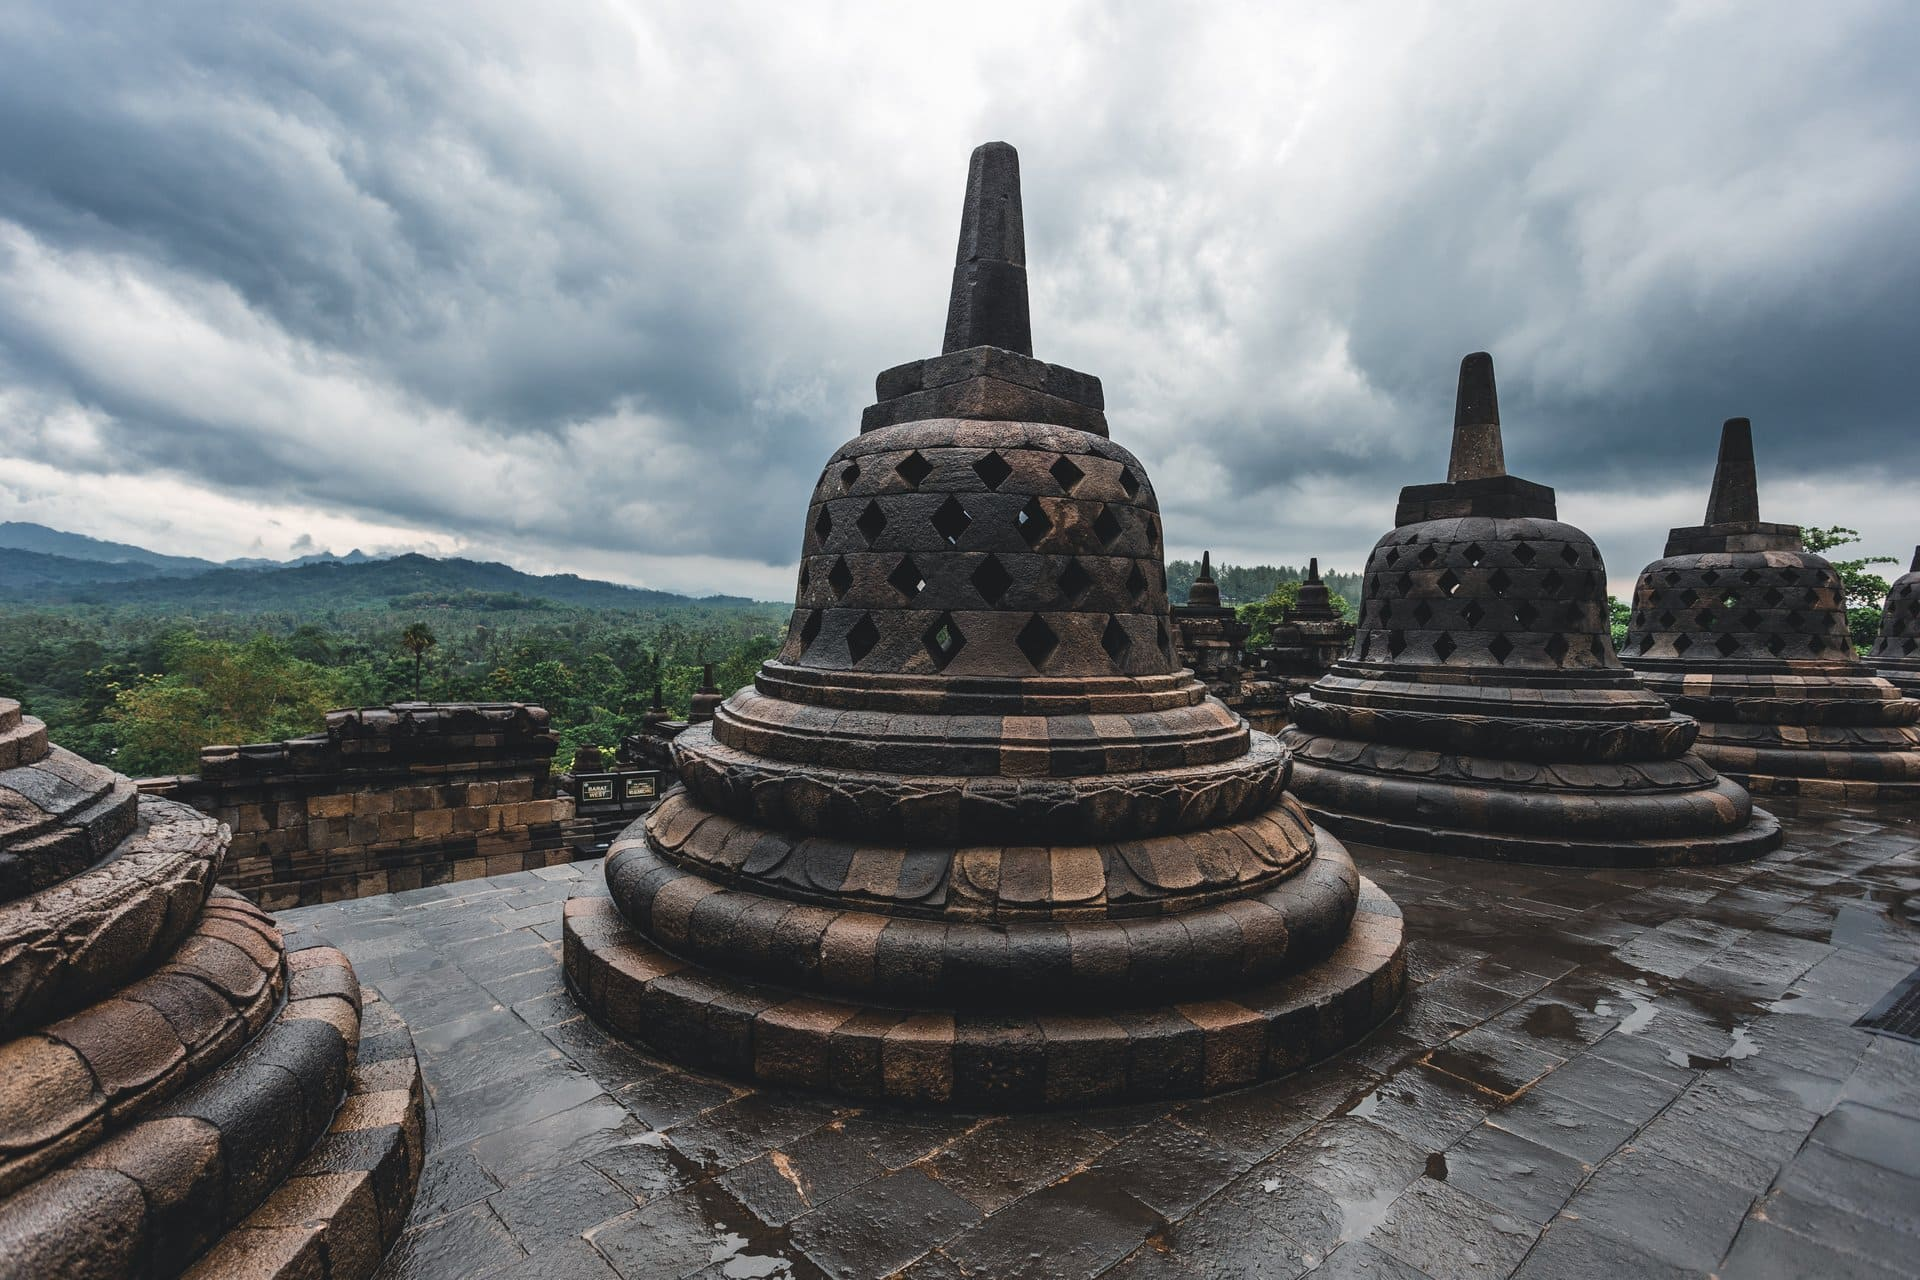 If you were in Indonesia, what would you go to Borobudur to see?